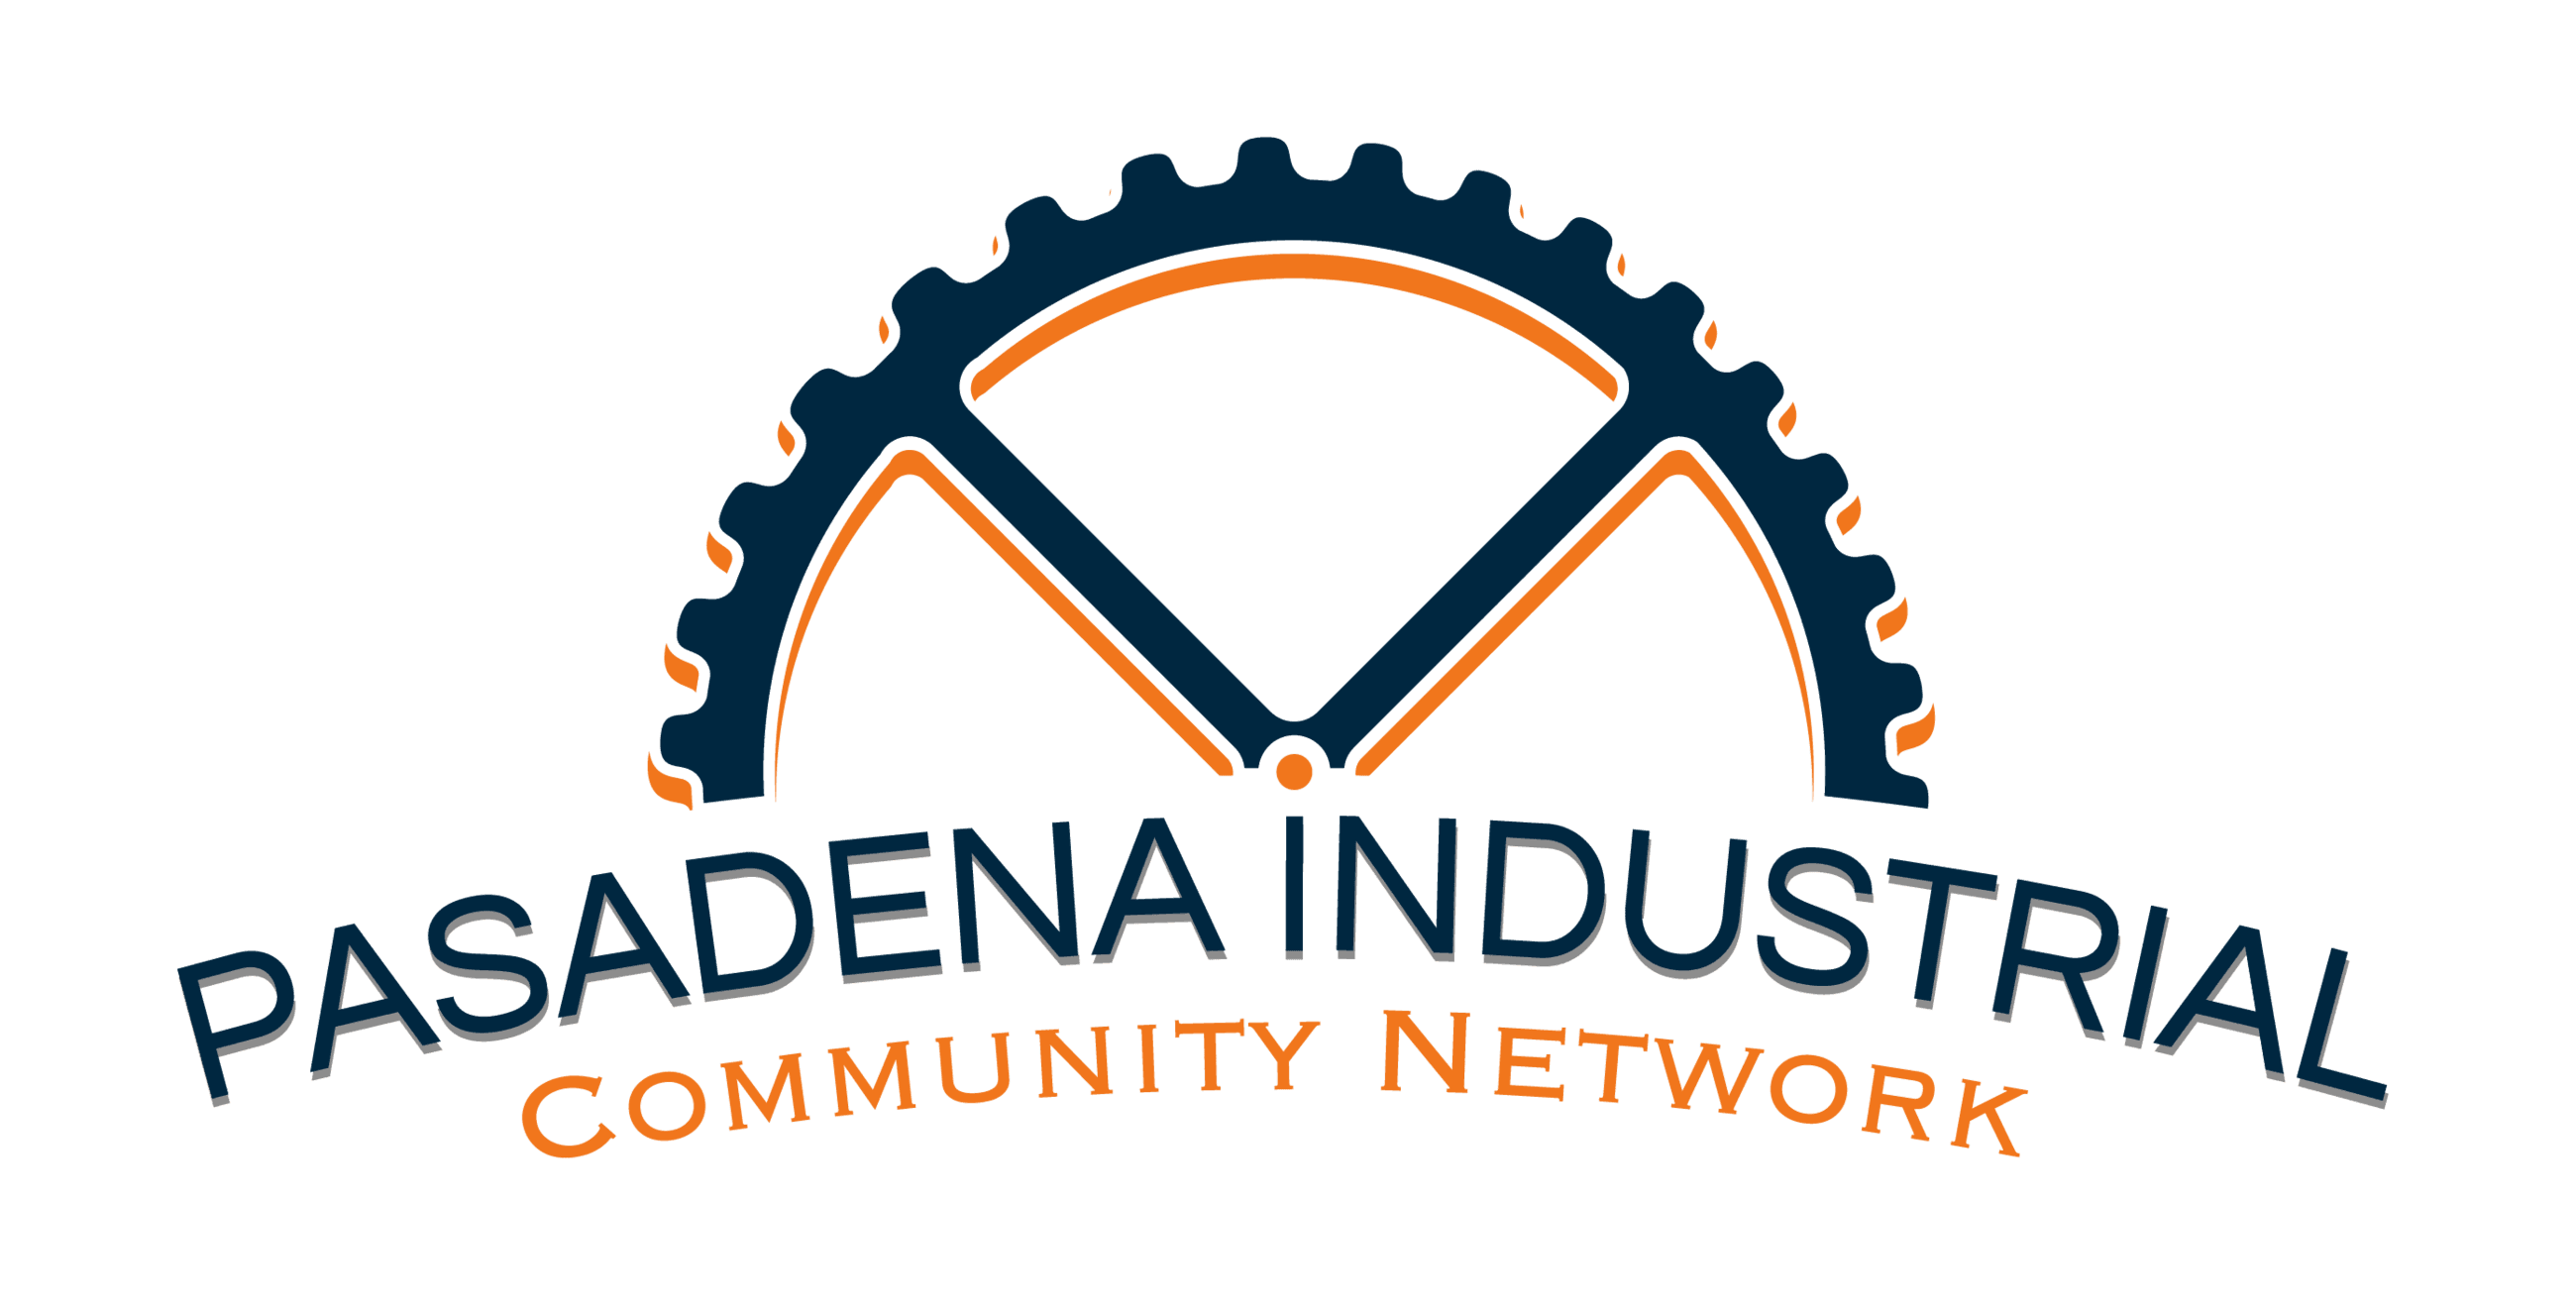 Pasadena Industrial Community Network Logo